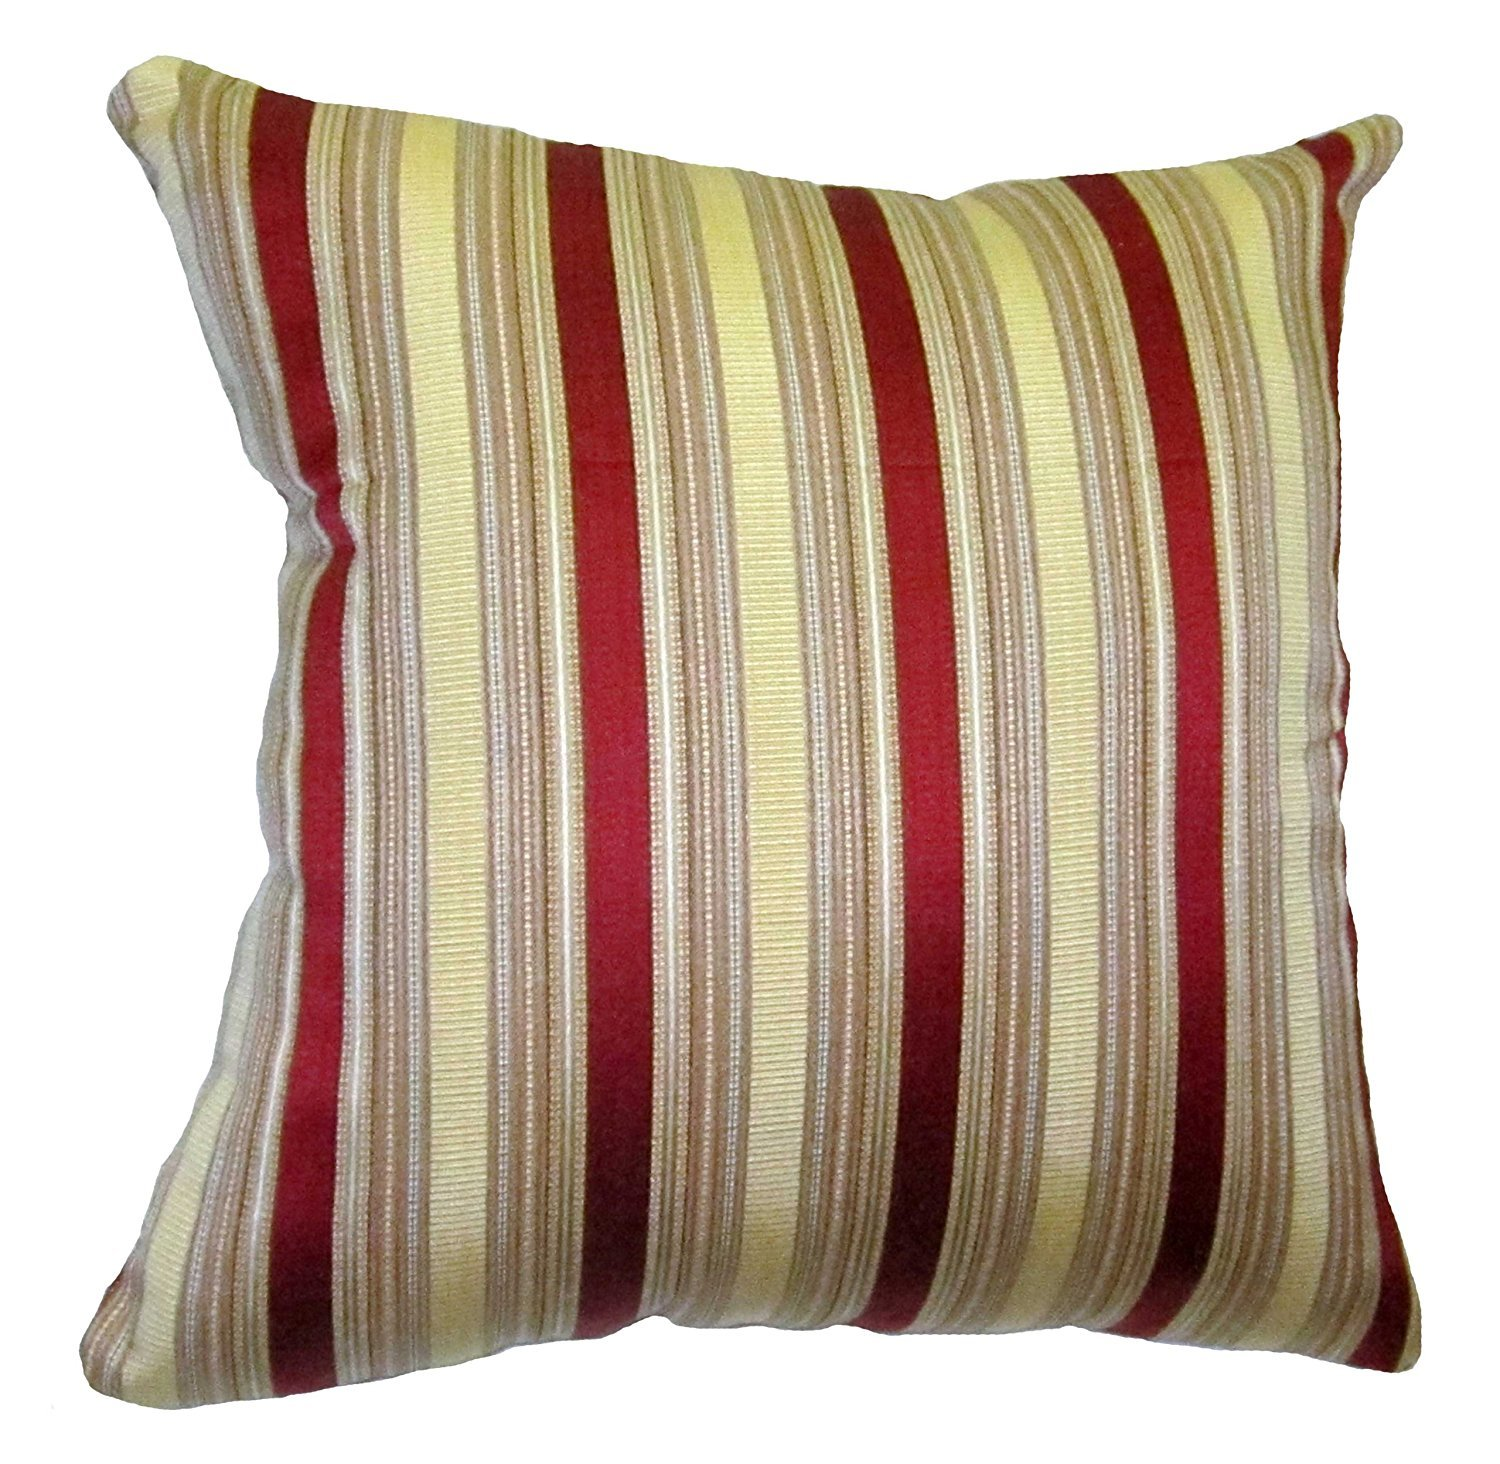 20x20 Burgundy and Gold Stripes Brocade Decorative Throw Pillow Cover